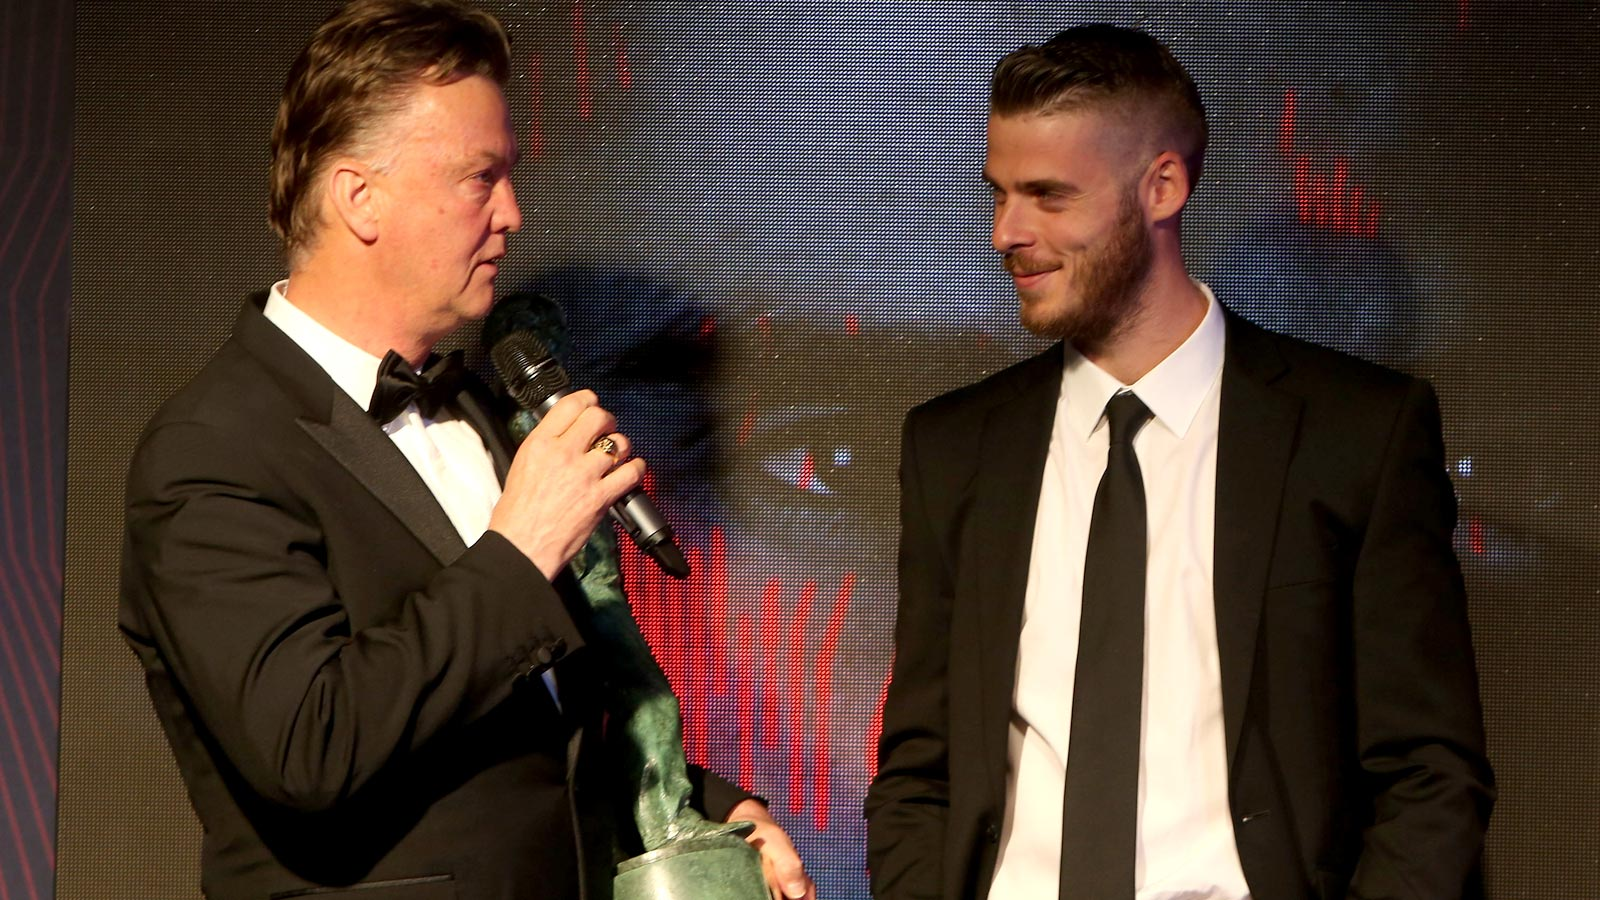 Van Gaal unsure if De Gea will still be at United on Tuesday